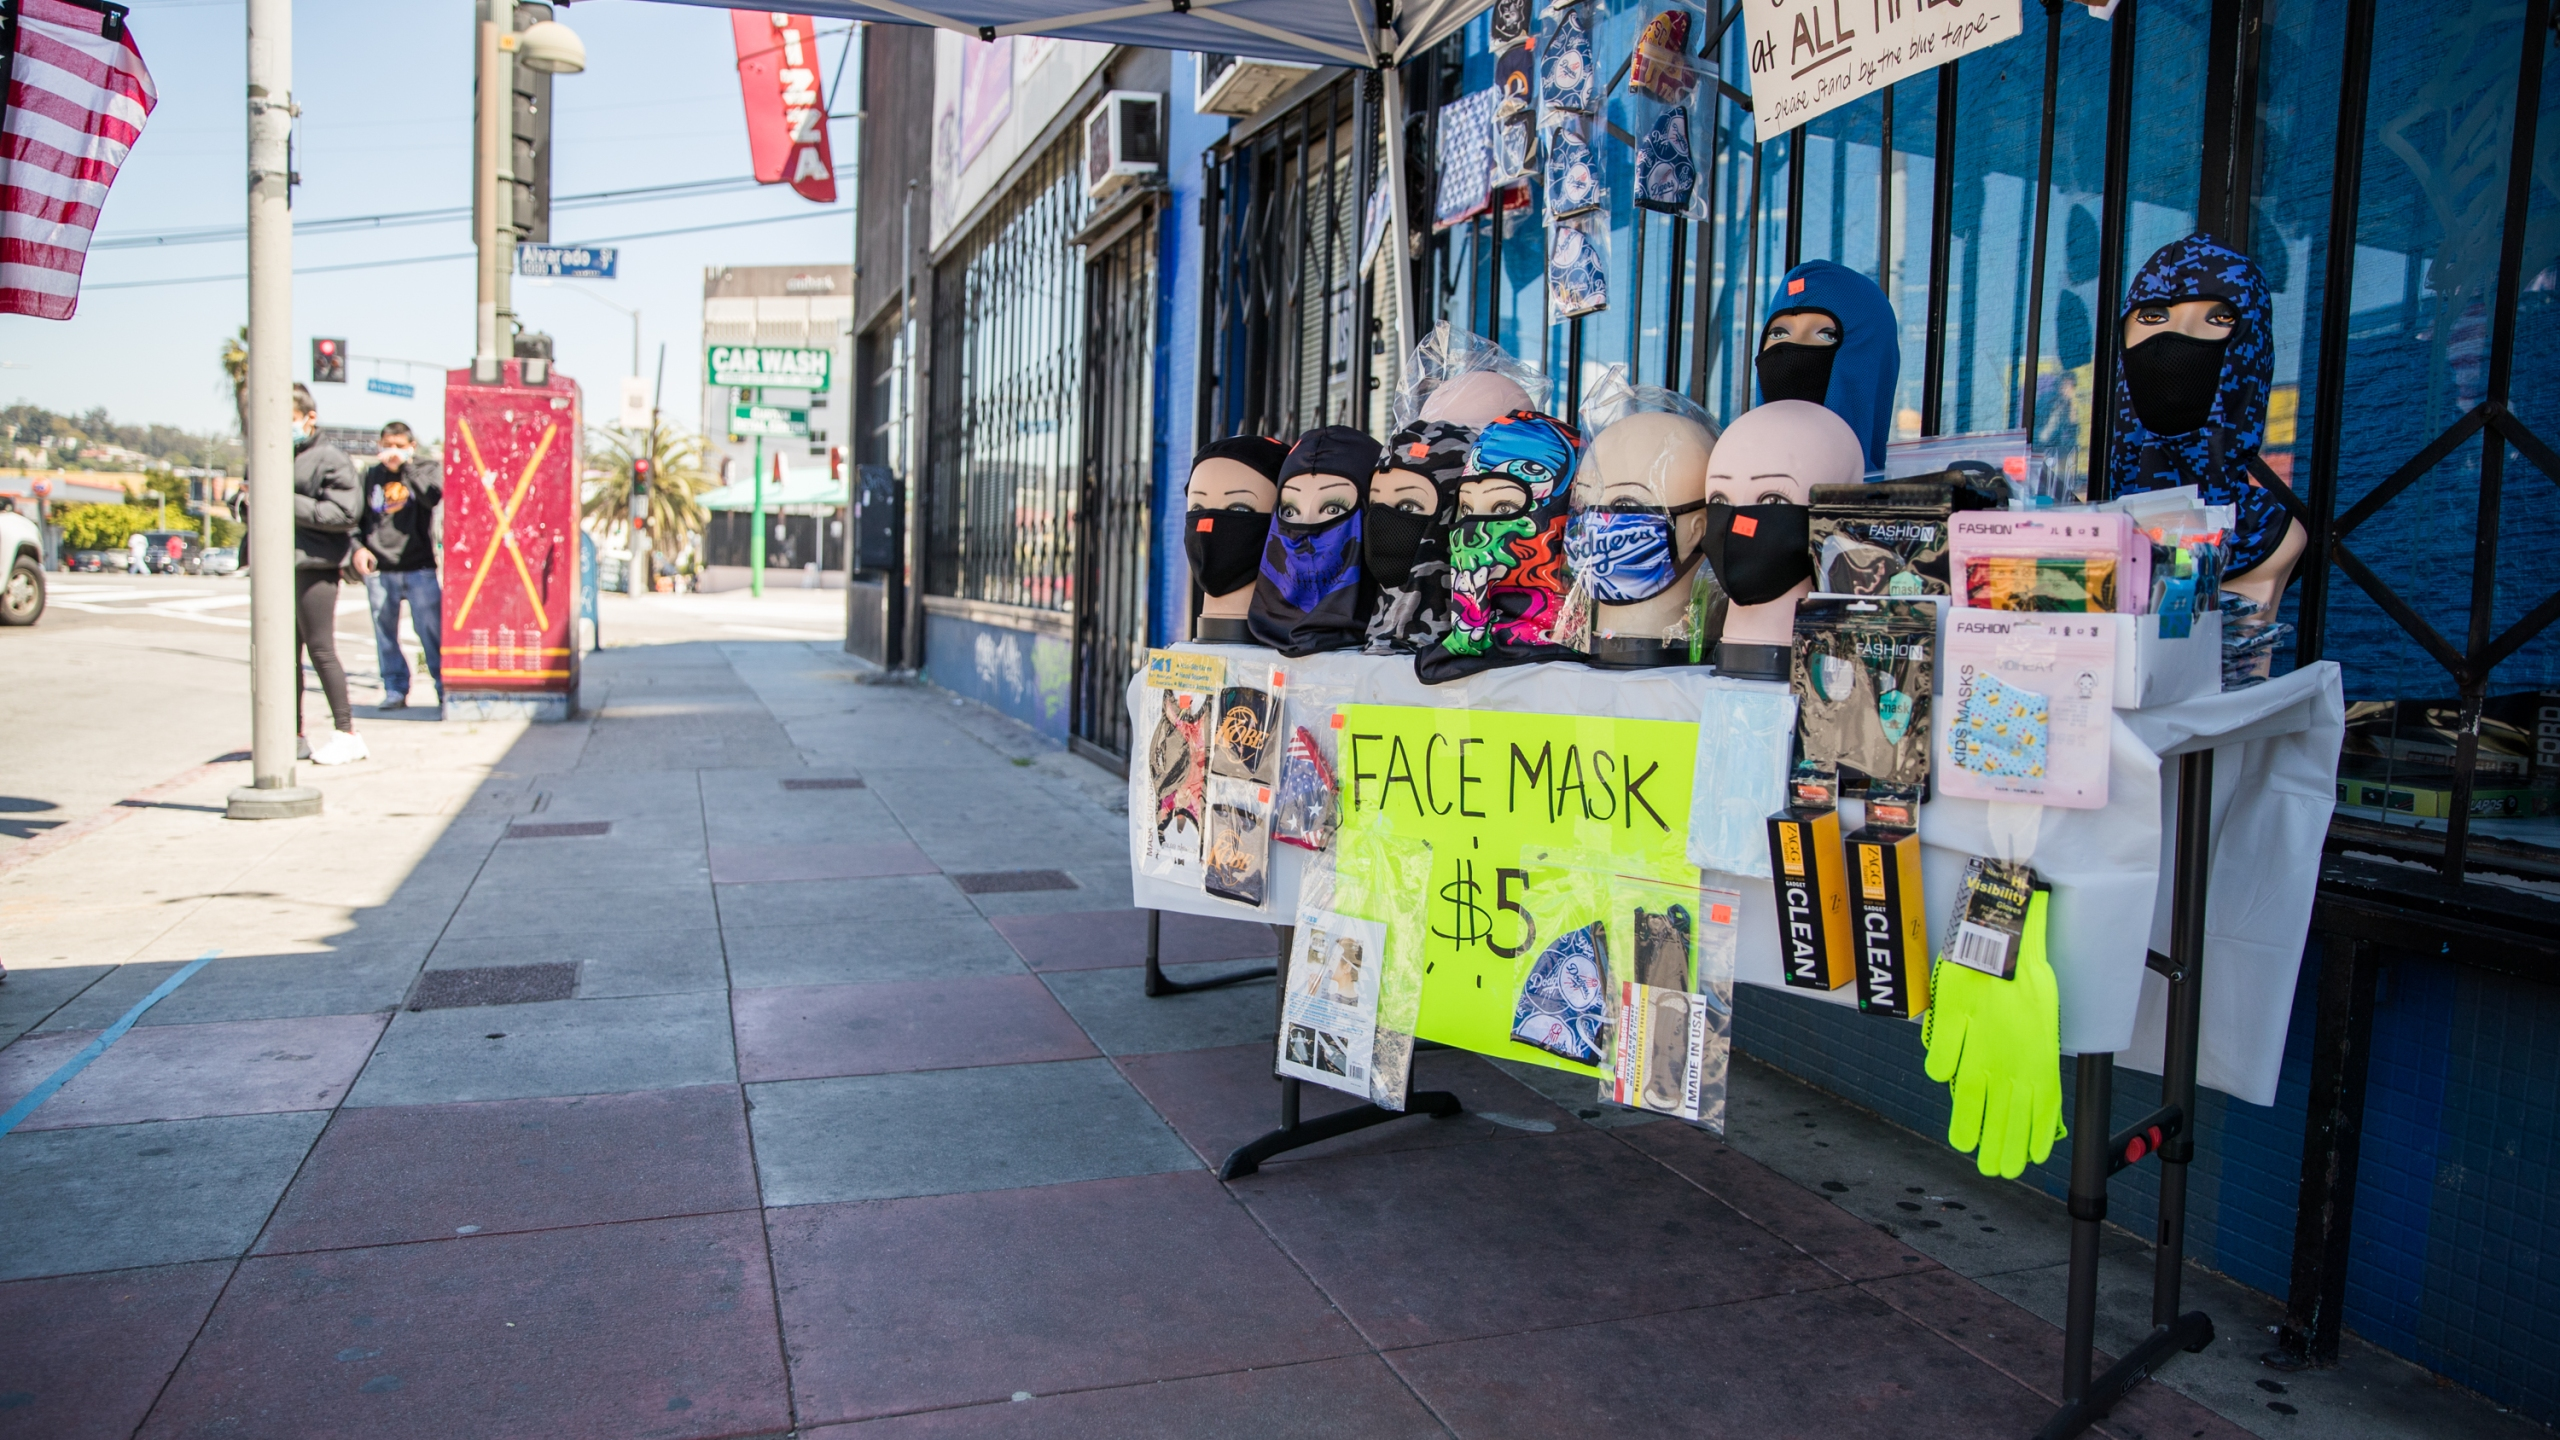 A street vendor sells face masks from a pop up stand on April 15, 2020, in Los Angeles, California. (Rich Fury/Getty Images)